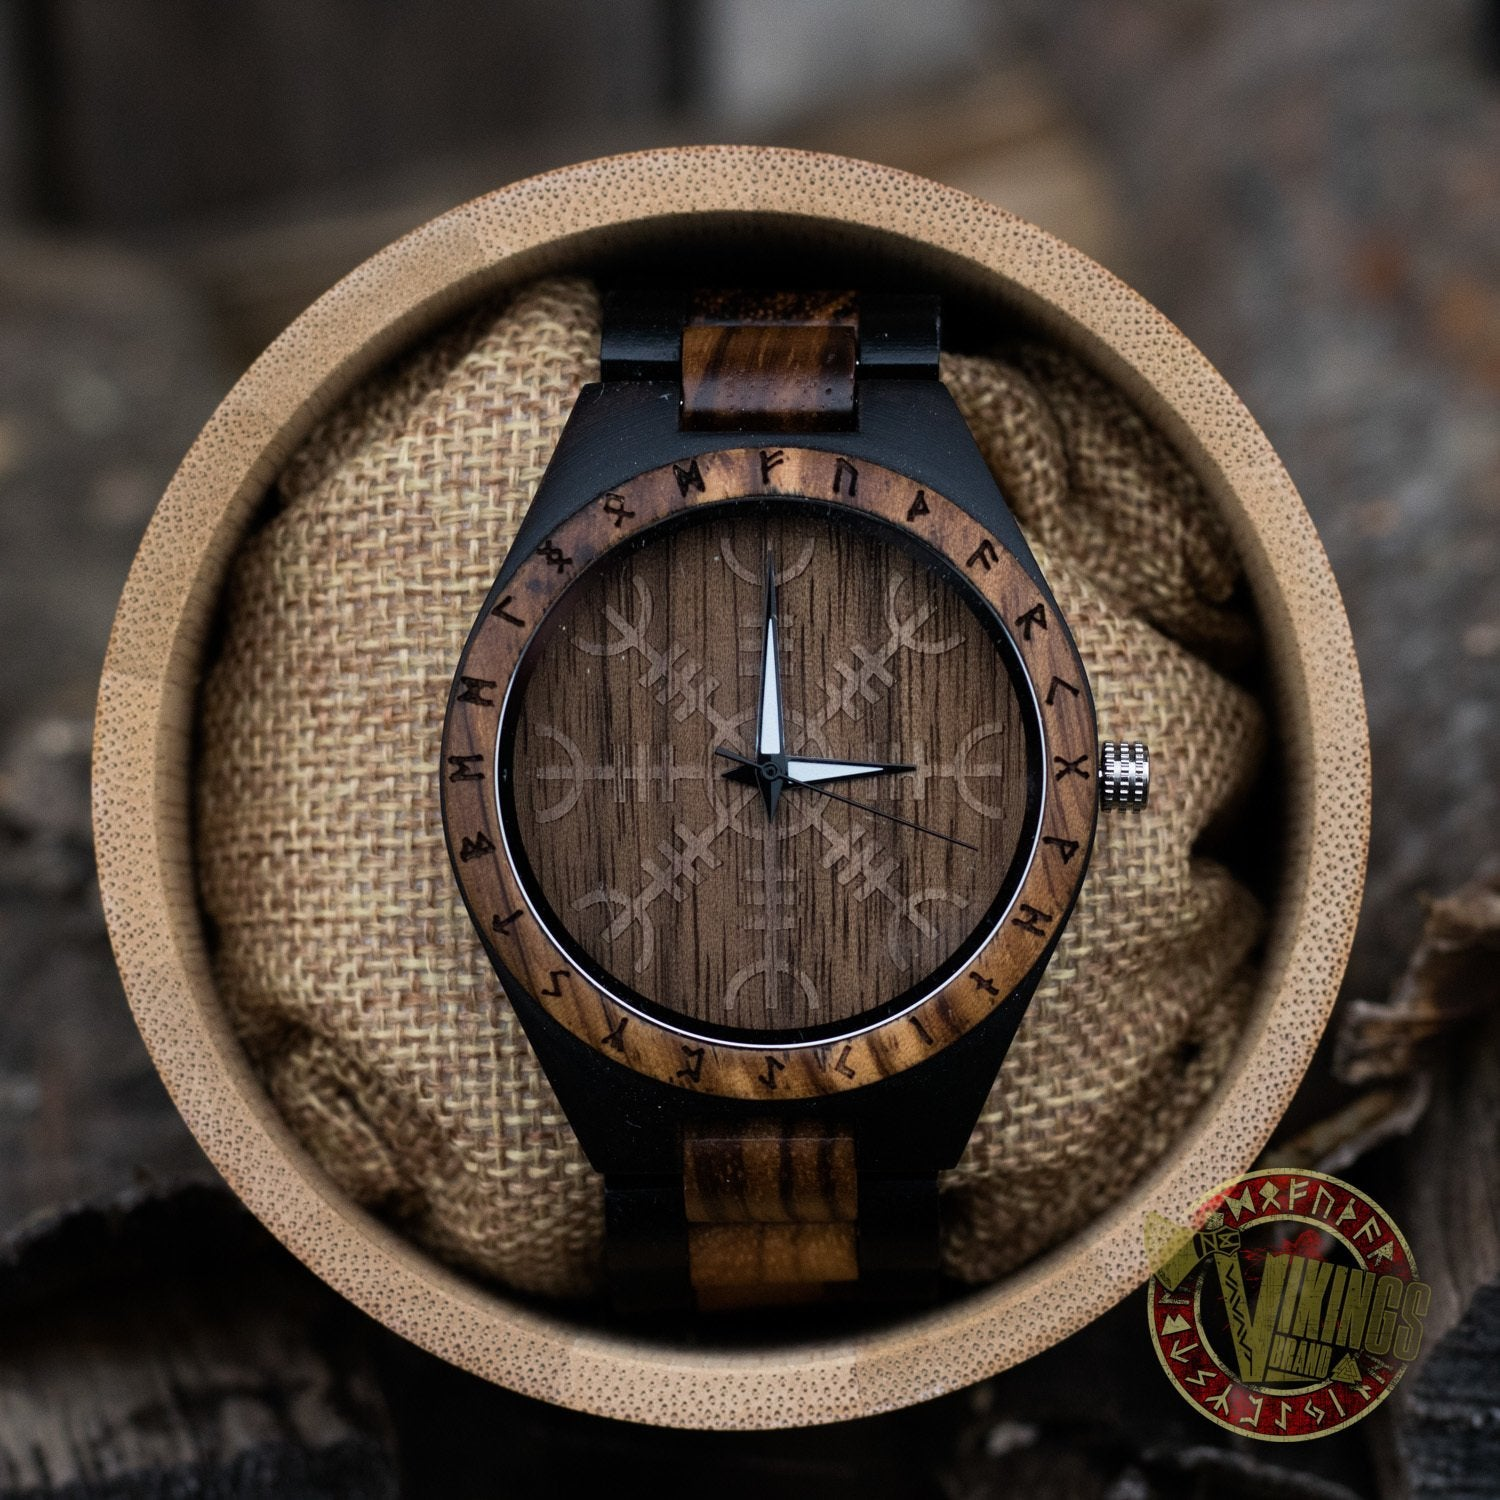 Ivar Viking Wooden Watch with Helm of Awe Viking Symbol & Engraved Die in Battle & Go To Valhalla Saying